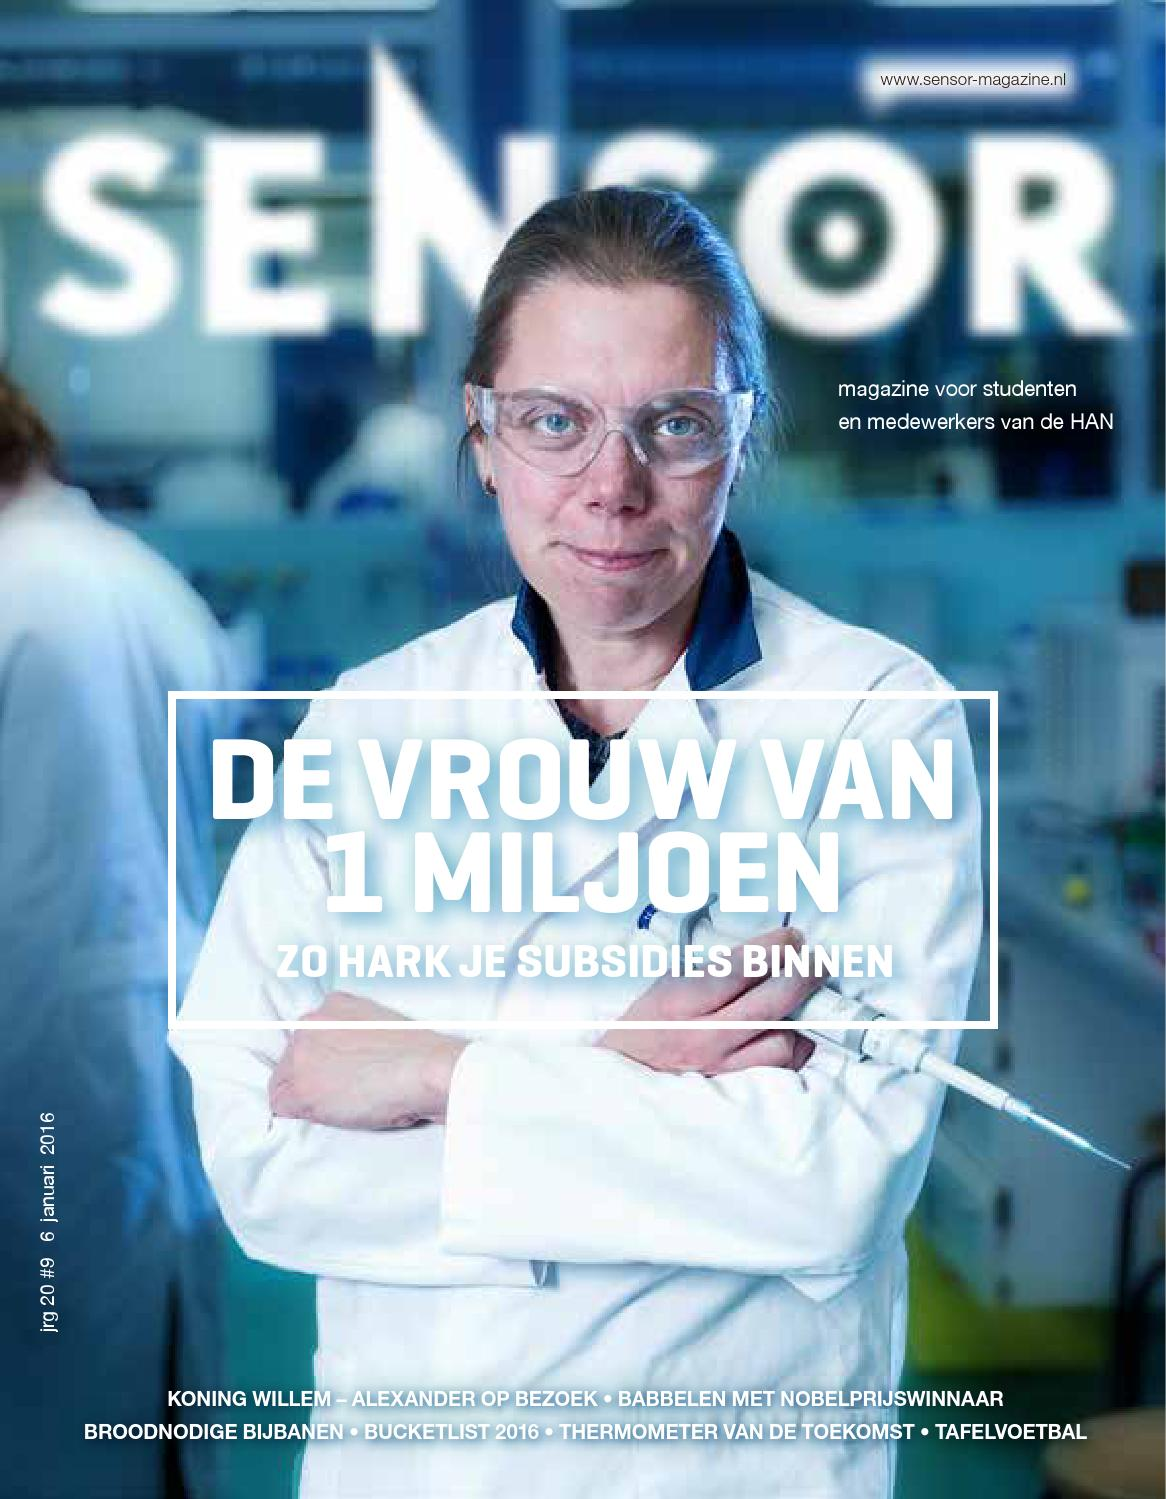 Sensor jr20 nr09 small by Sensor magazine - issuu